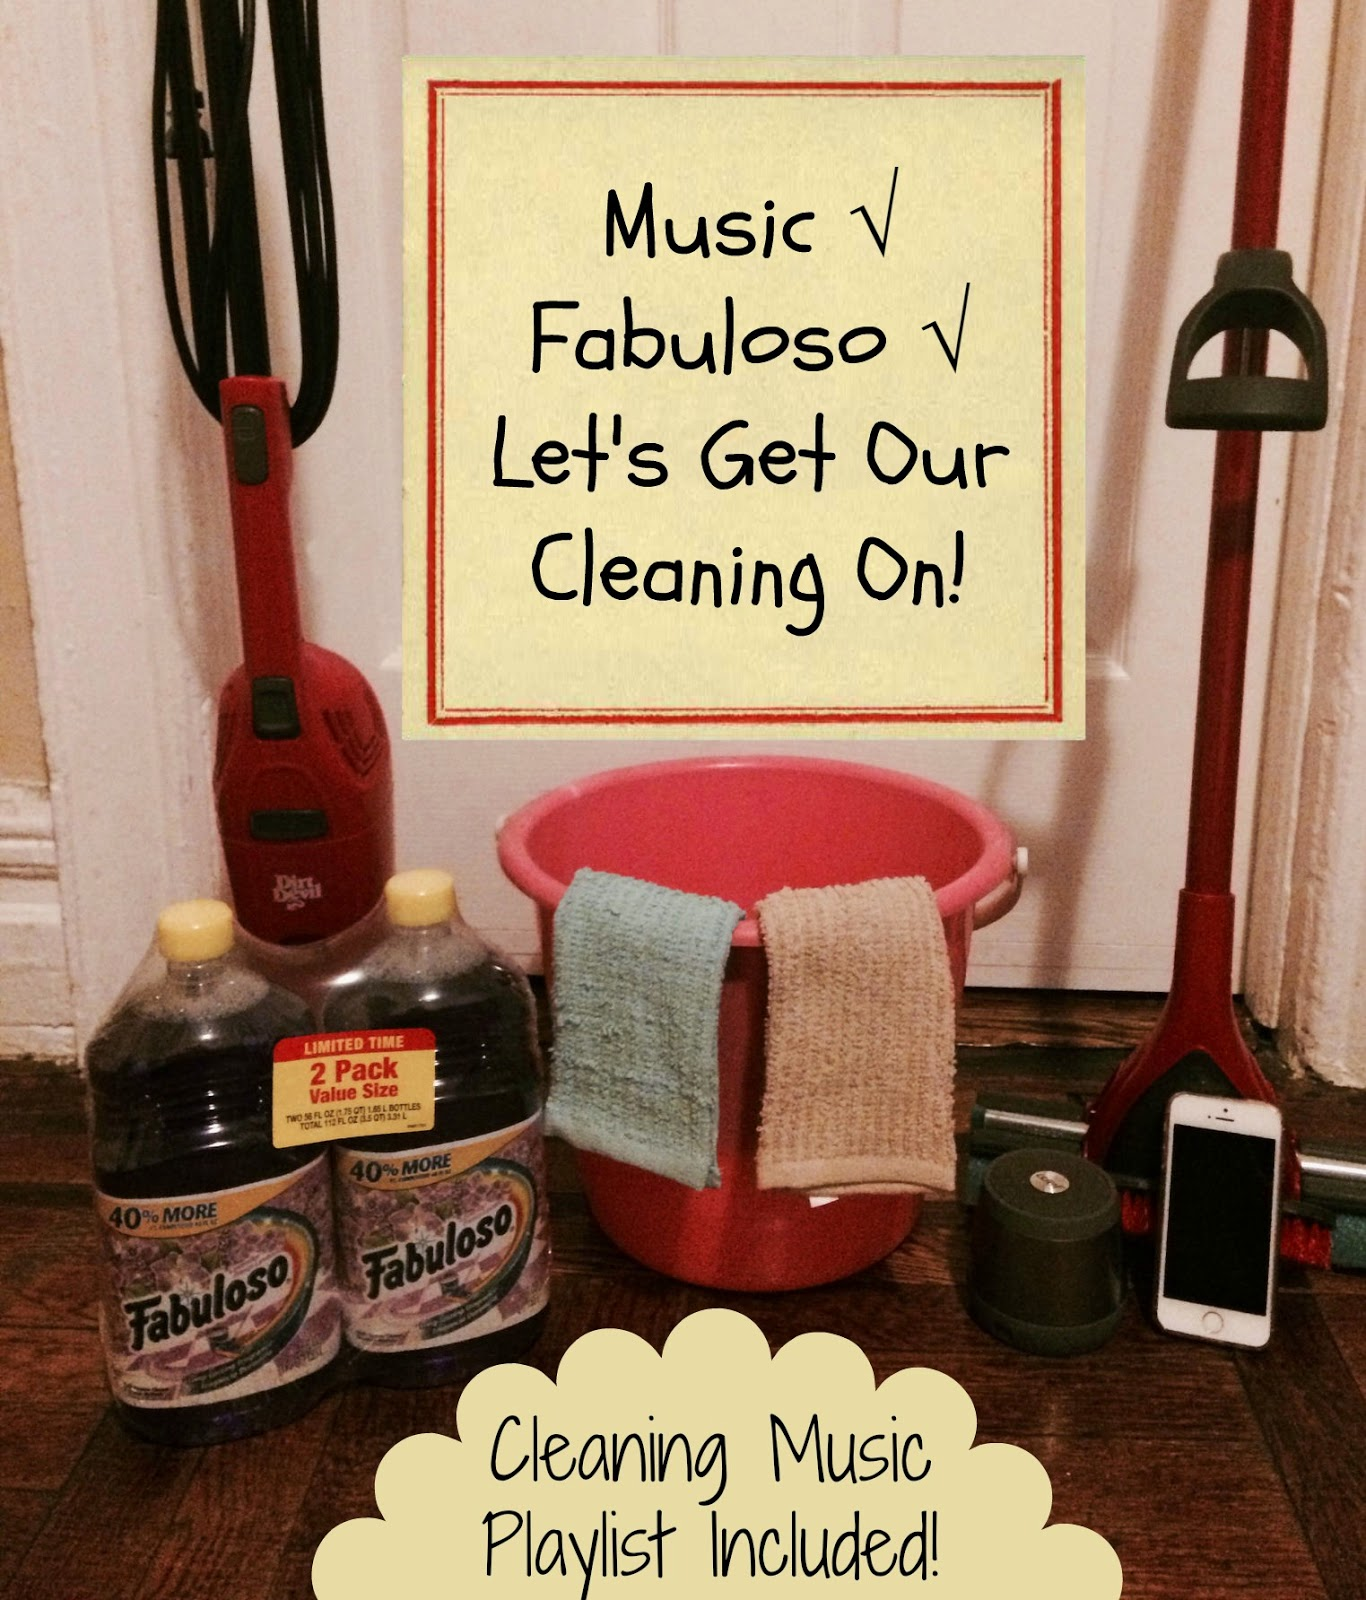 Music Mifabuloso Cleaner Let 39 S Get Our Cleaning On